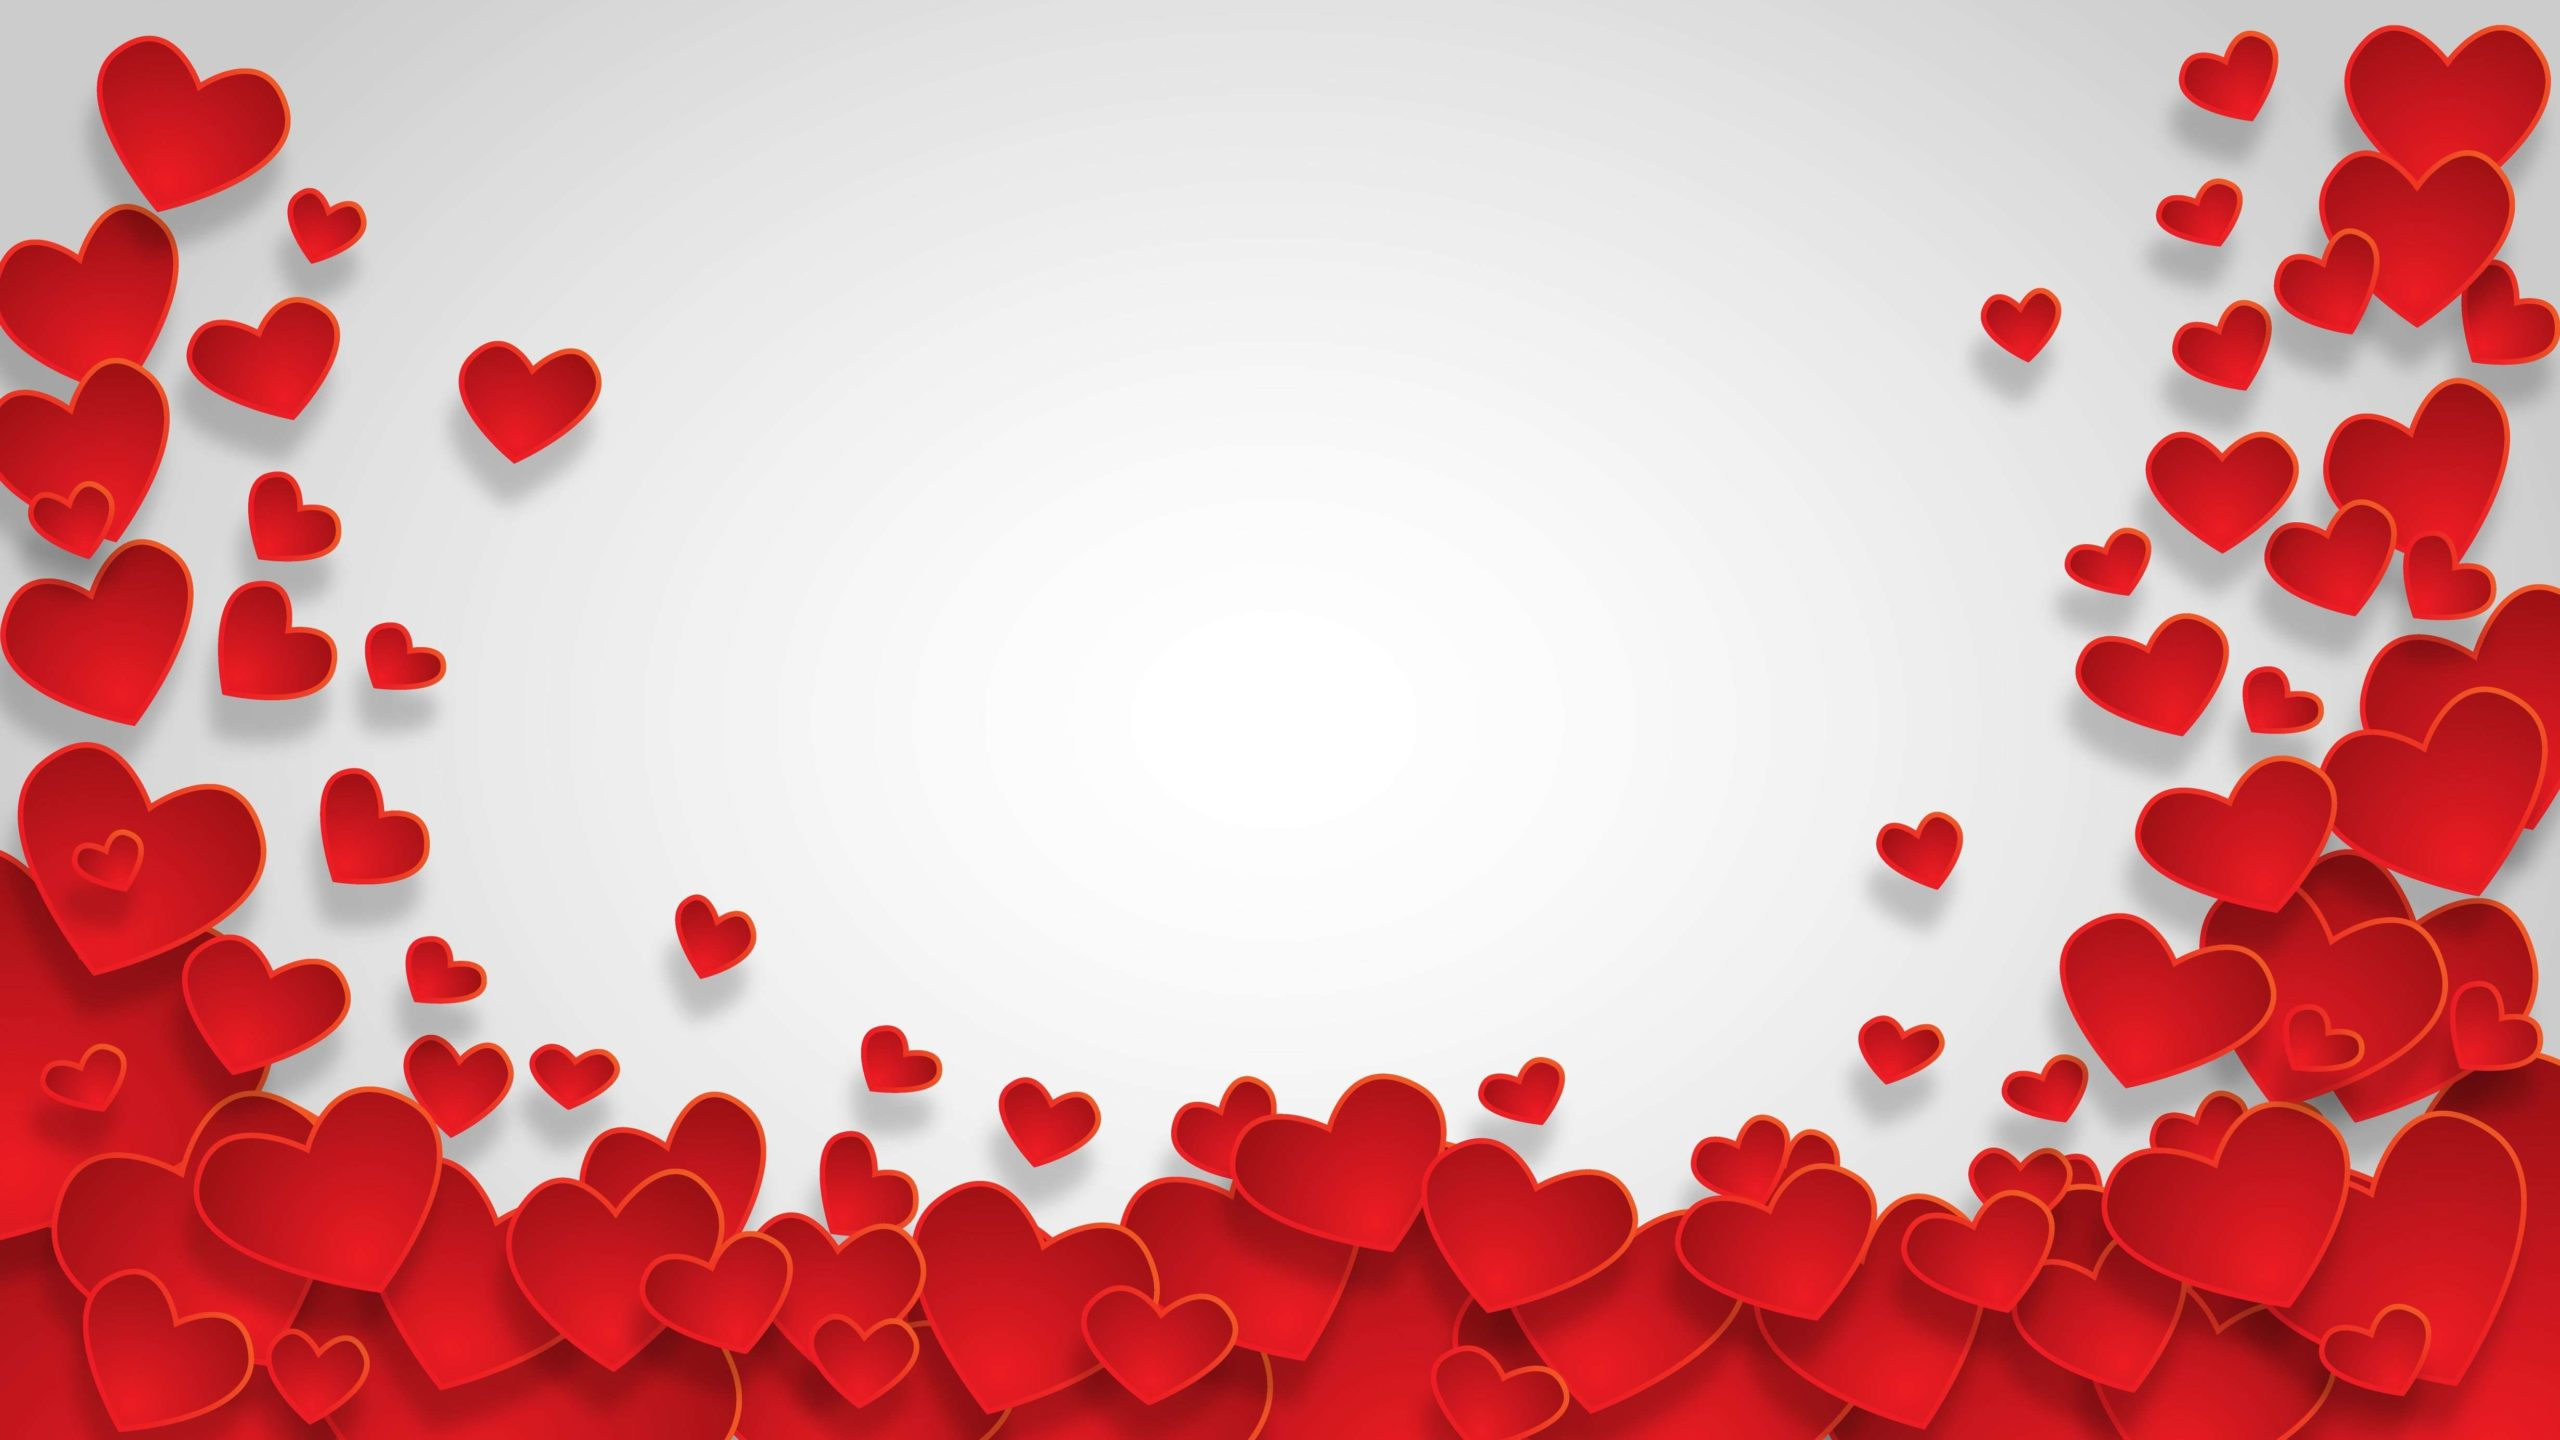 Geart Love HD Image for Happy Valentines Day 14 Feb Gifts Ideas